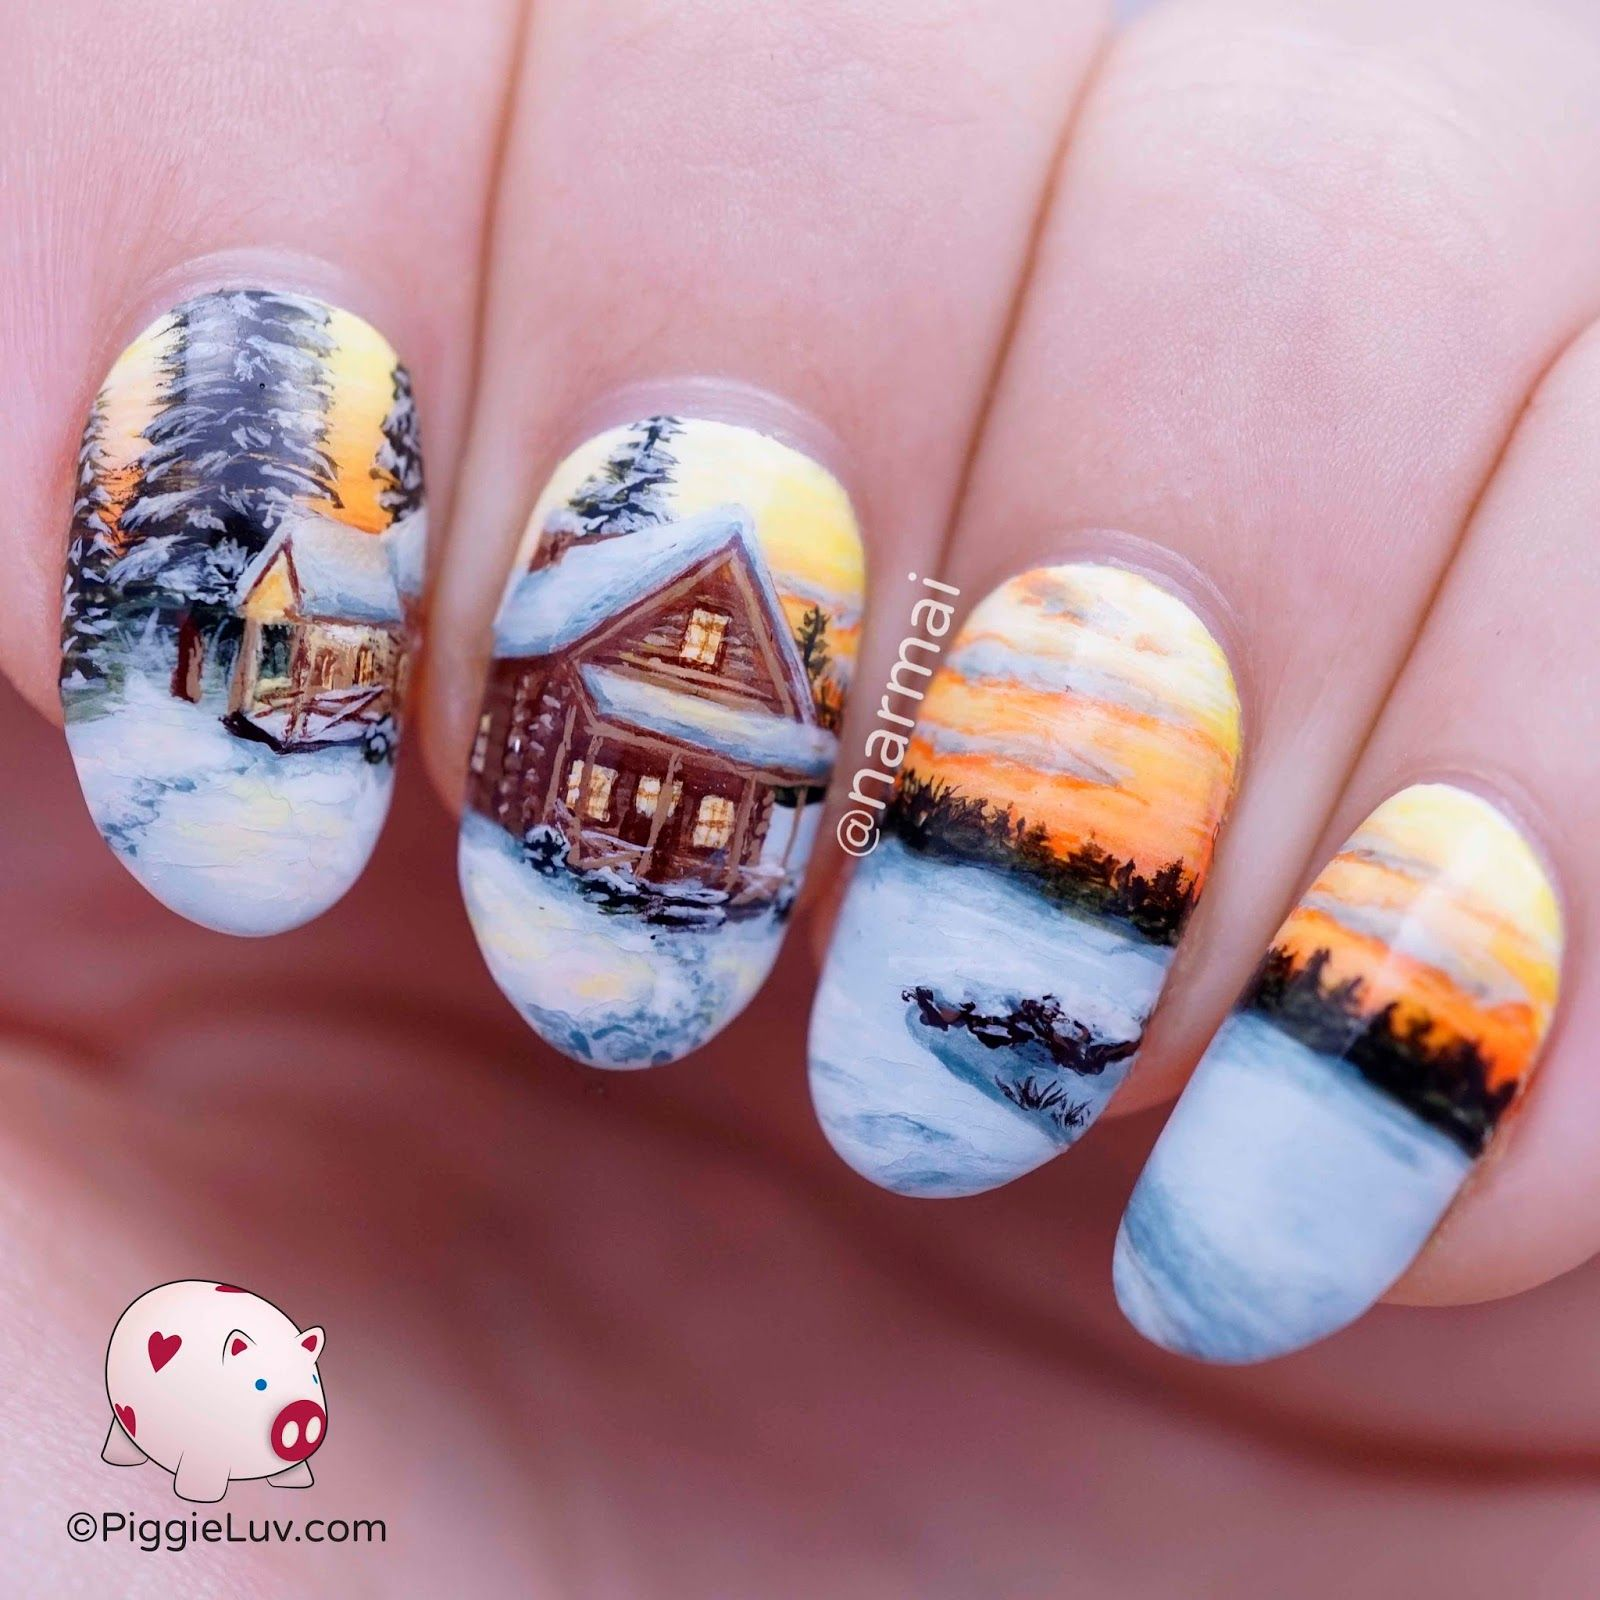 Freehand winter cabin landscape nail art cosy cabin and trek ahh ive missed doing freehand landscape nail art come enjoy some hot cocoa prinsesfo Gallery